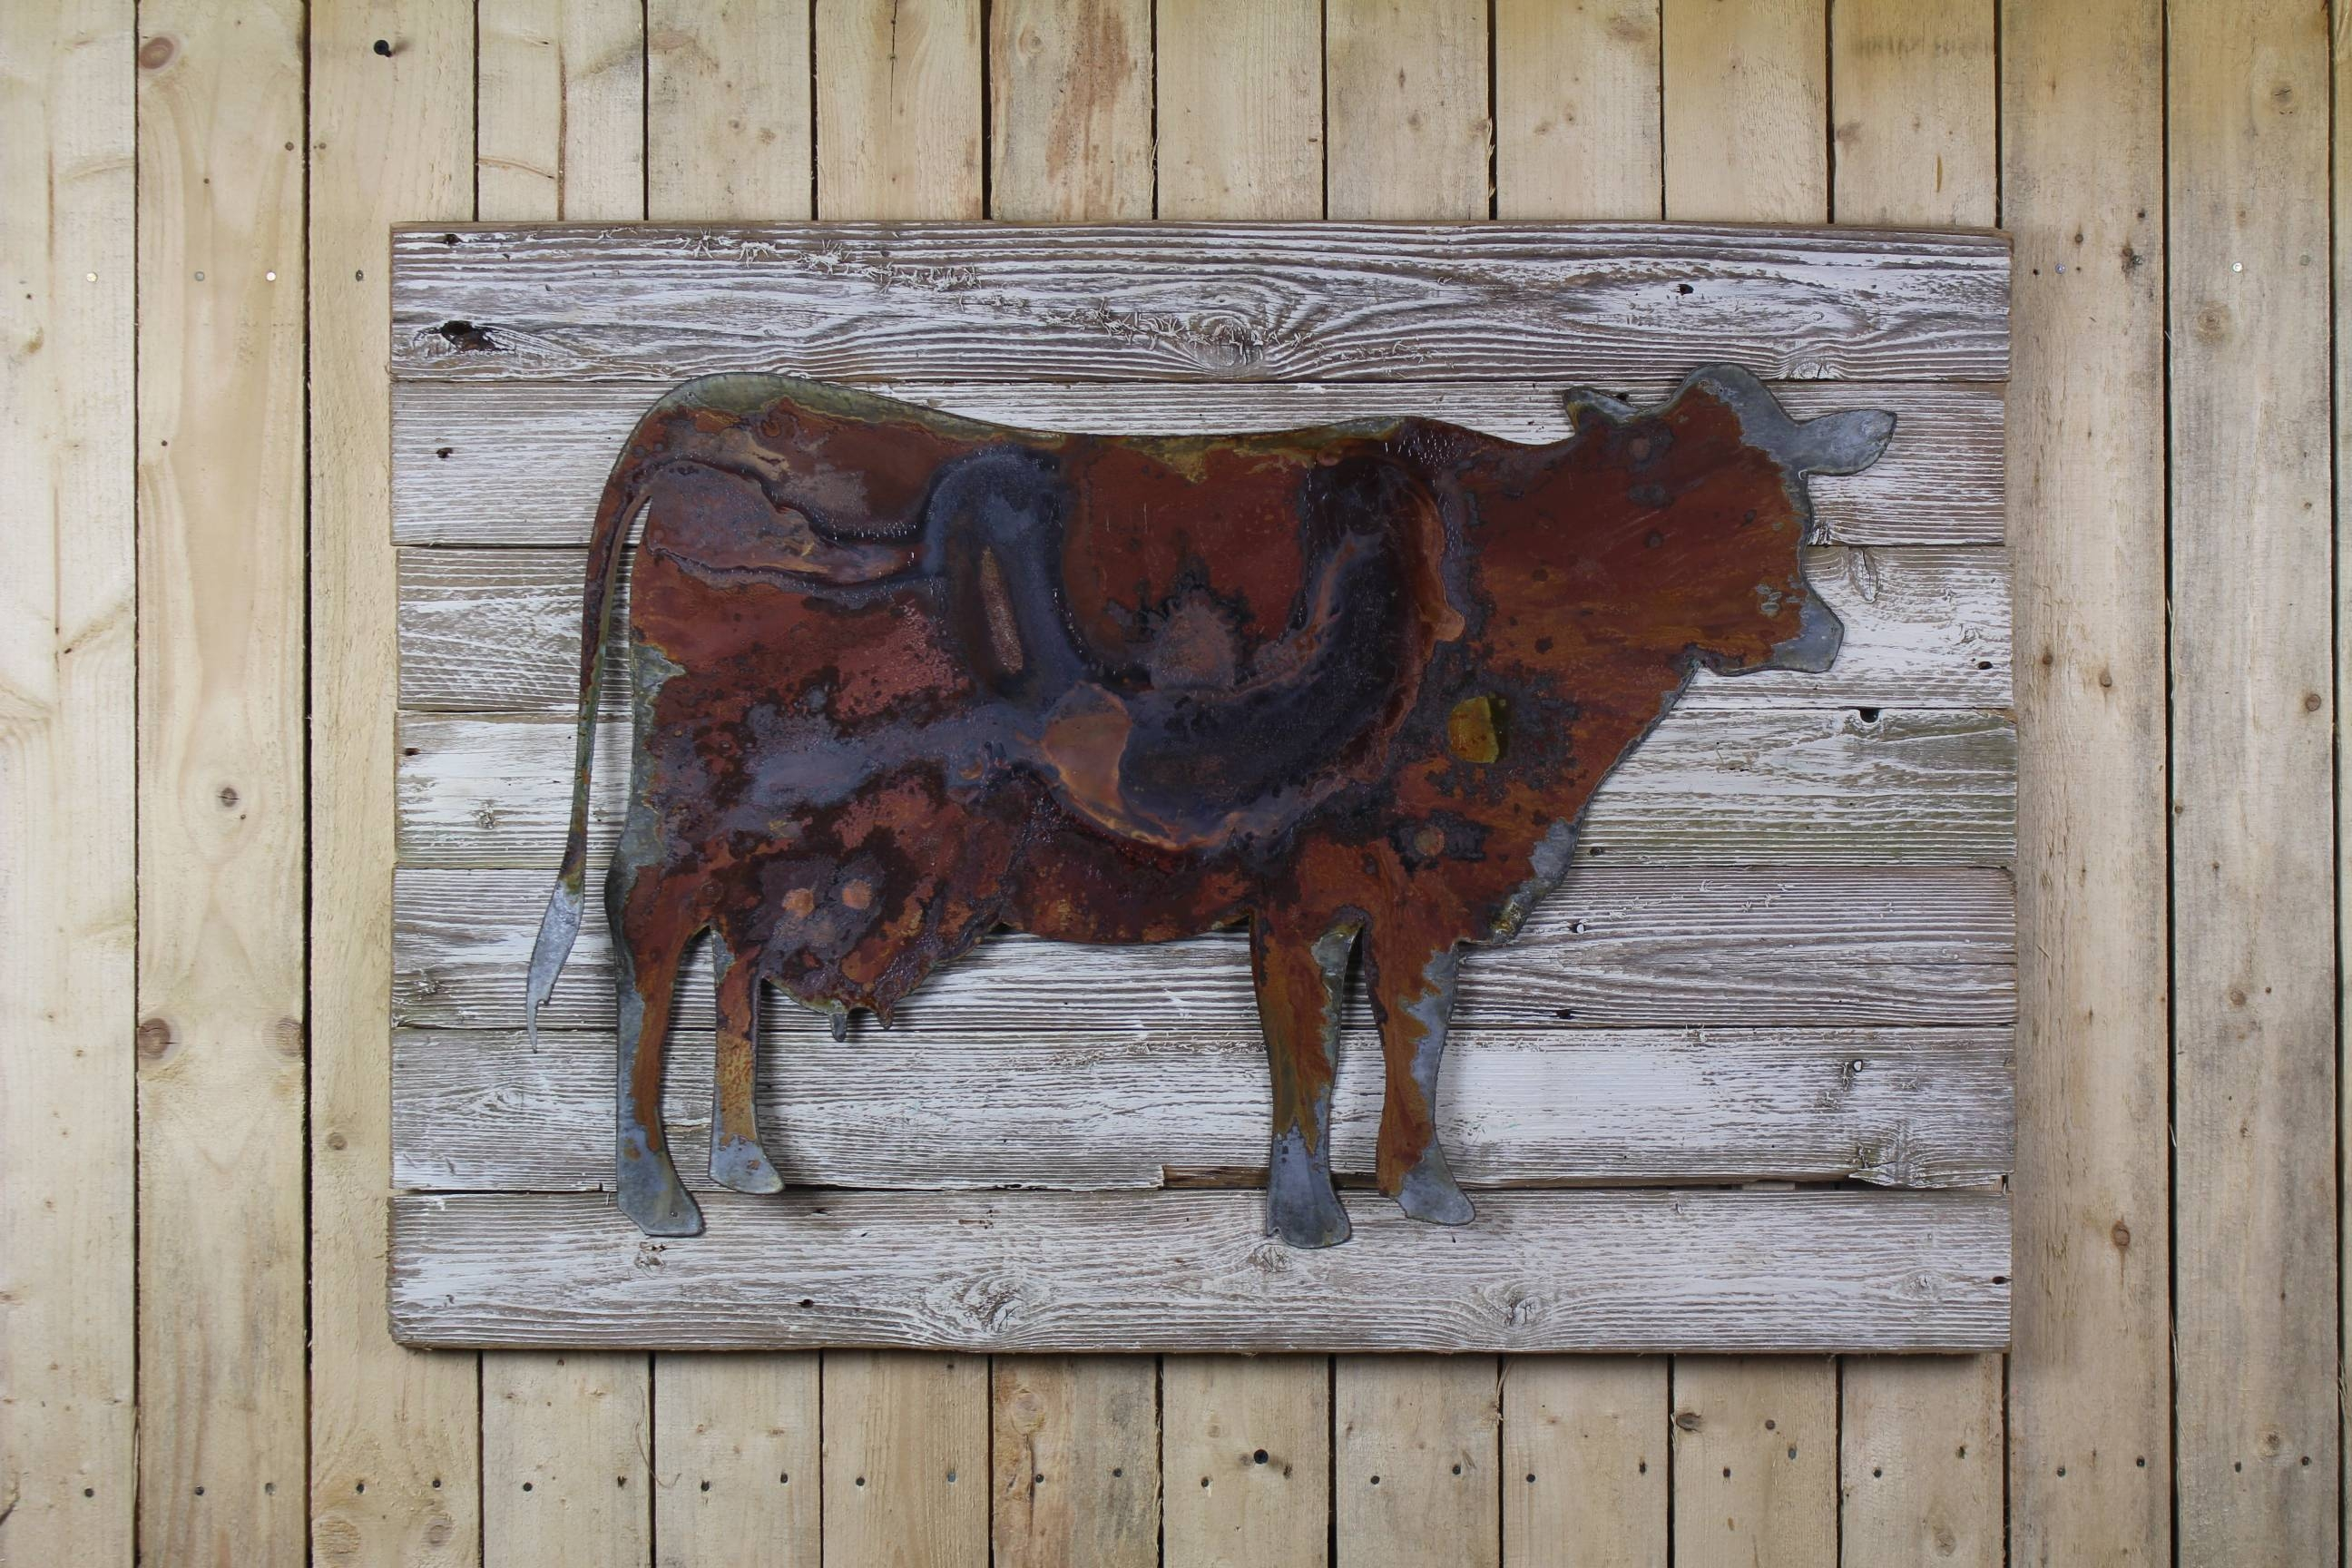 Cow On Wood Back – Rustic Metal Letters & Wall Art With Regard To 2017 Wood Animal Wall Art (View 6 of 20)